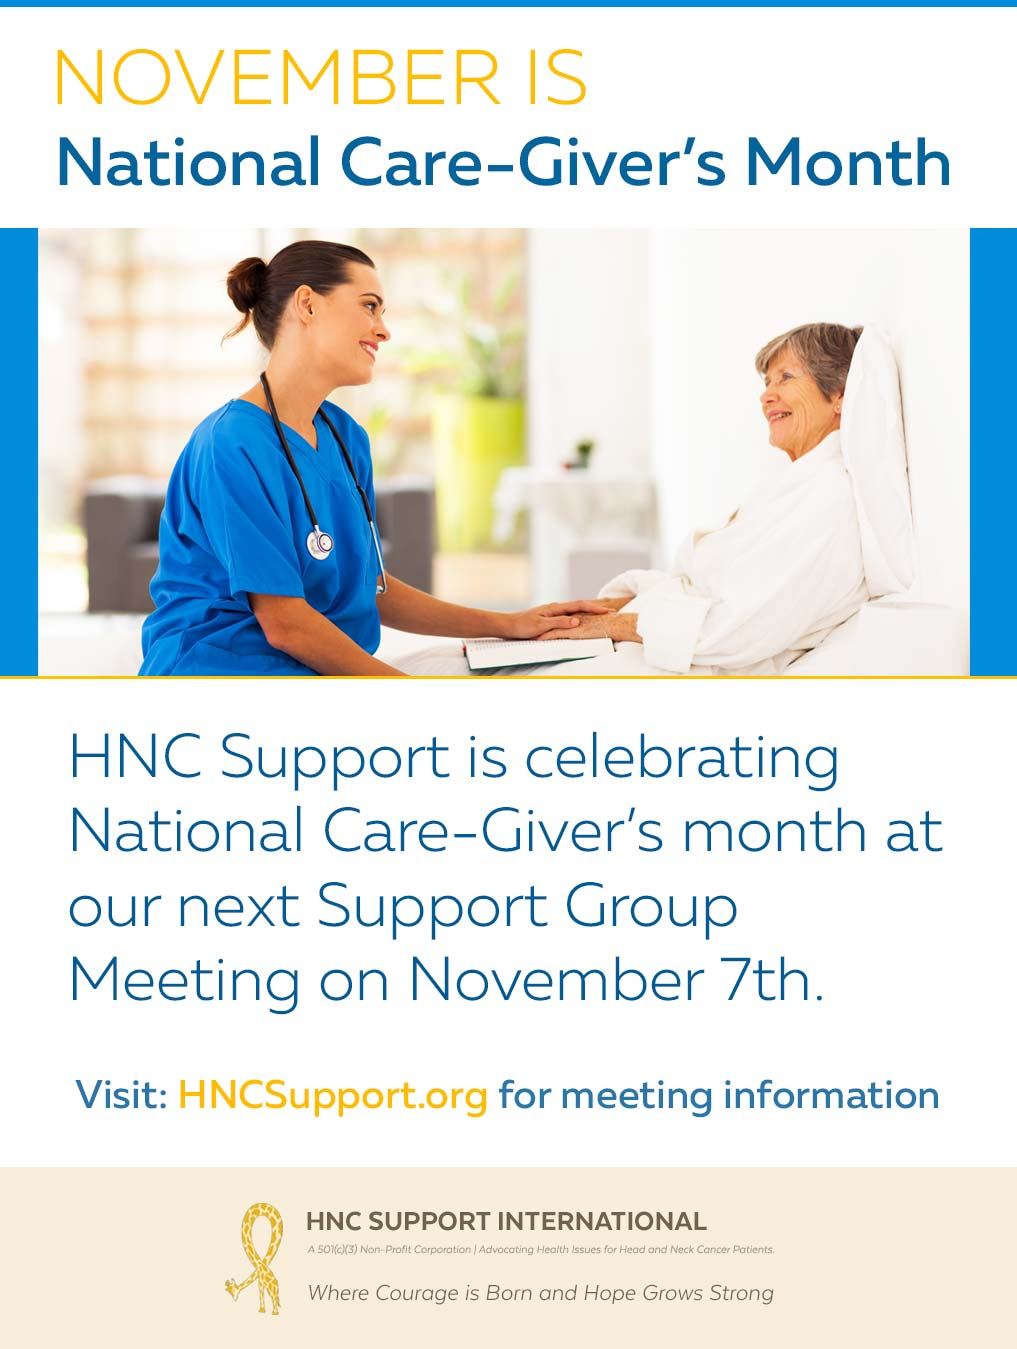 Notional Care-Giver's Month